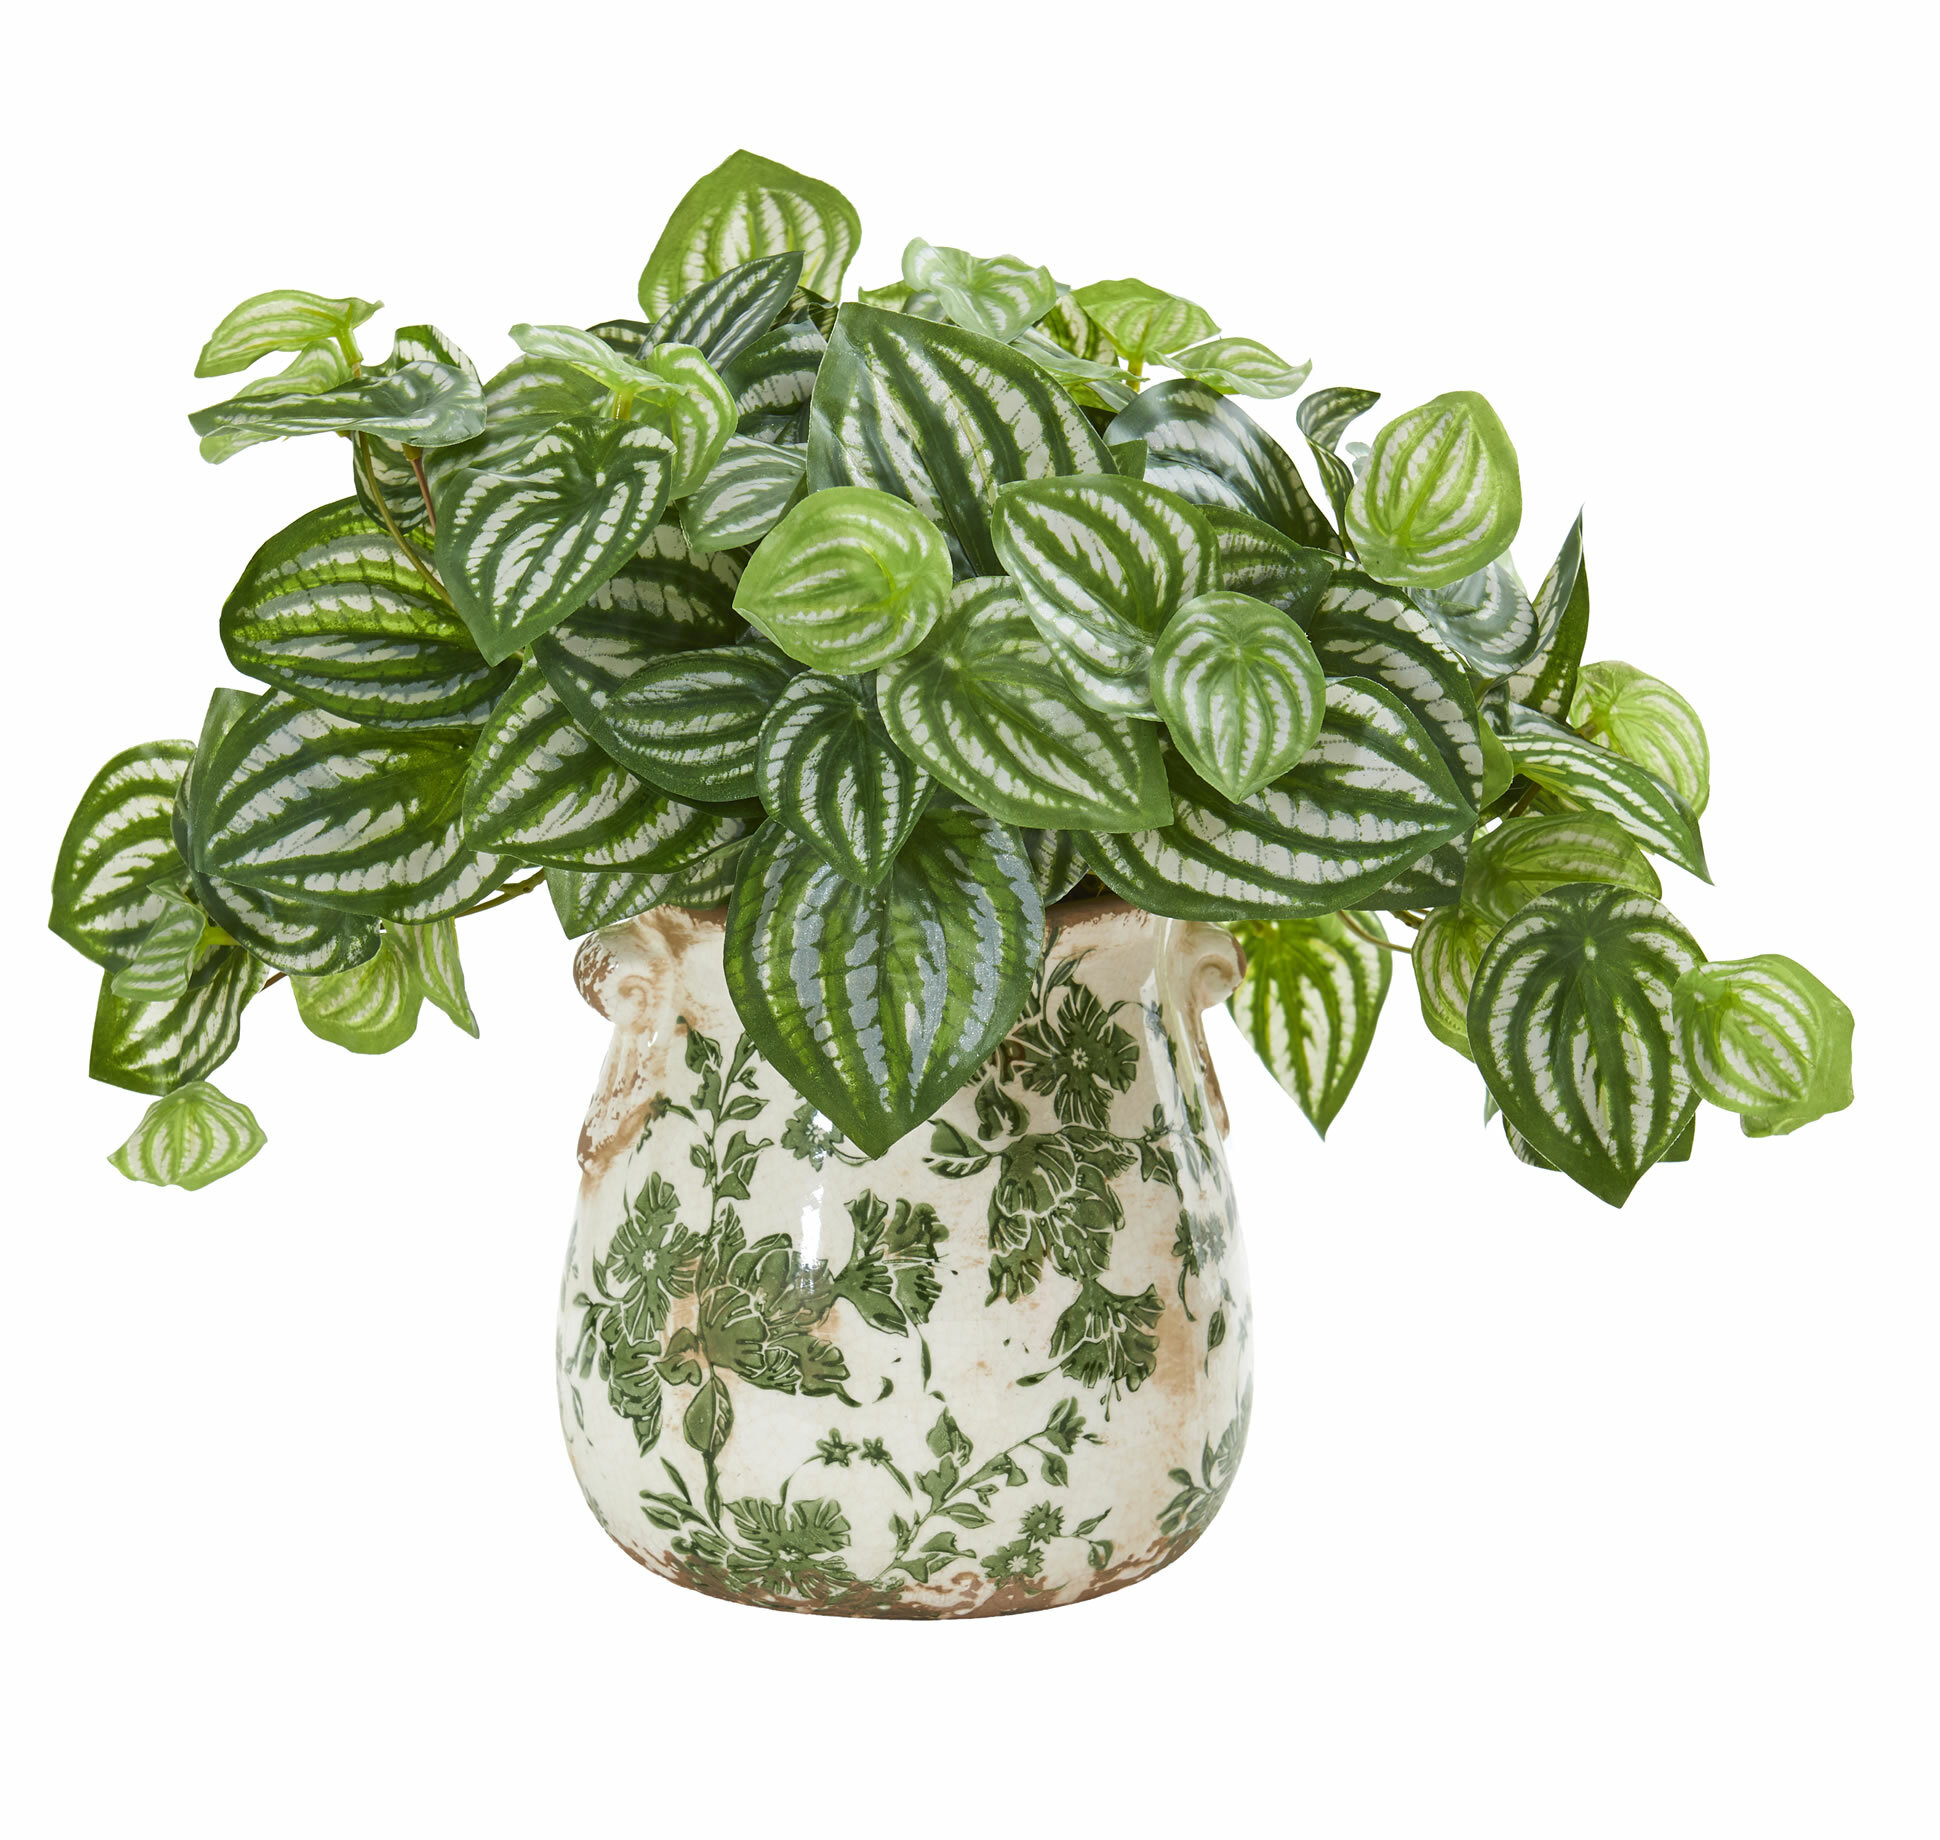 Charlton Home Artificial Watermelon Peperomia Foliage Plant In Decorative Vase Reviews Wayfair